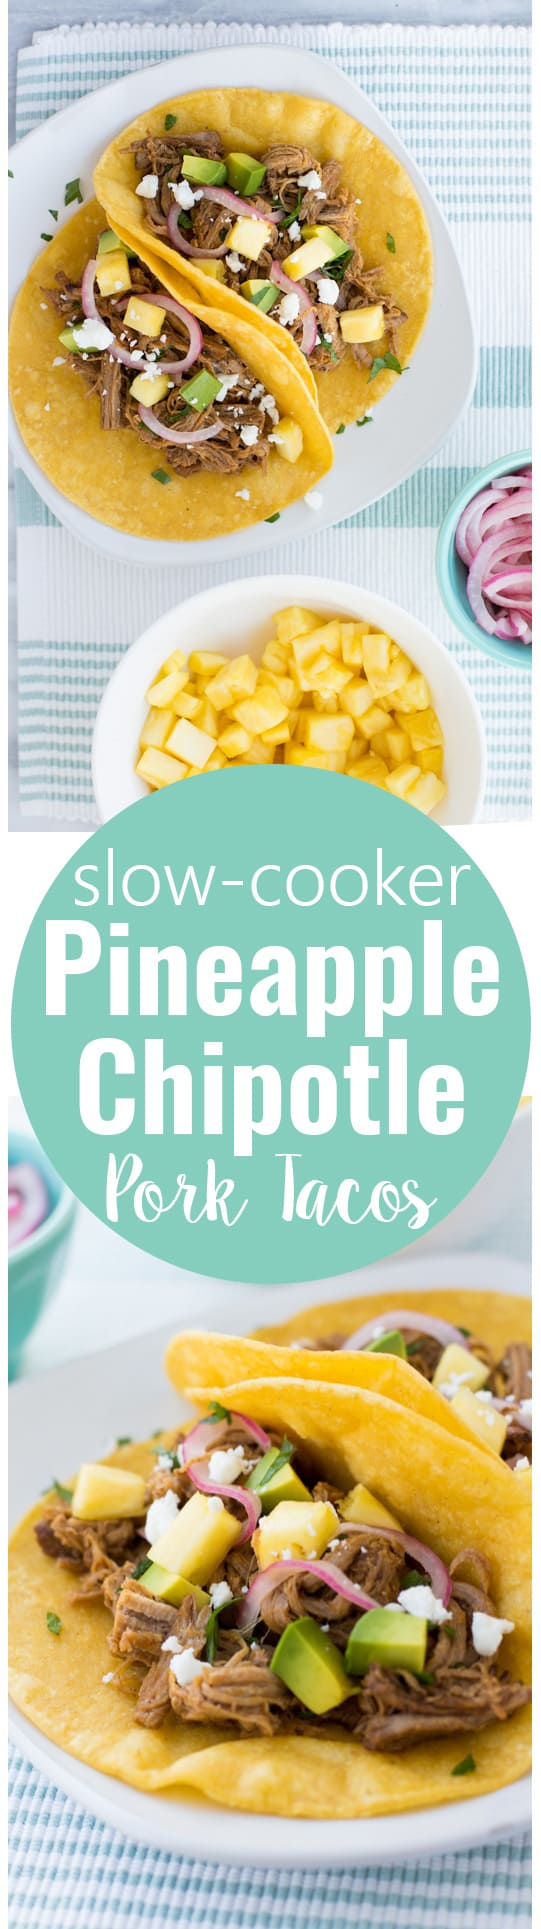 Slow-Cooker Pineapple Chipotle Pork Tacos-- simple to make in the crockpot, and full of amazing flavor!